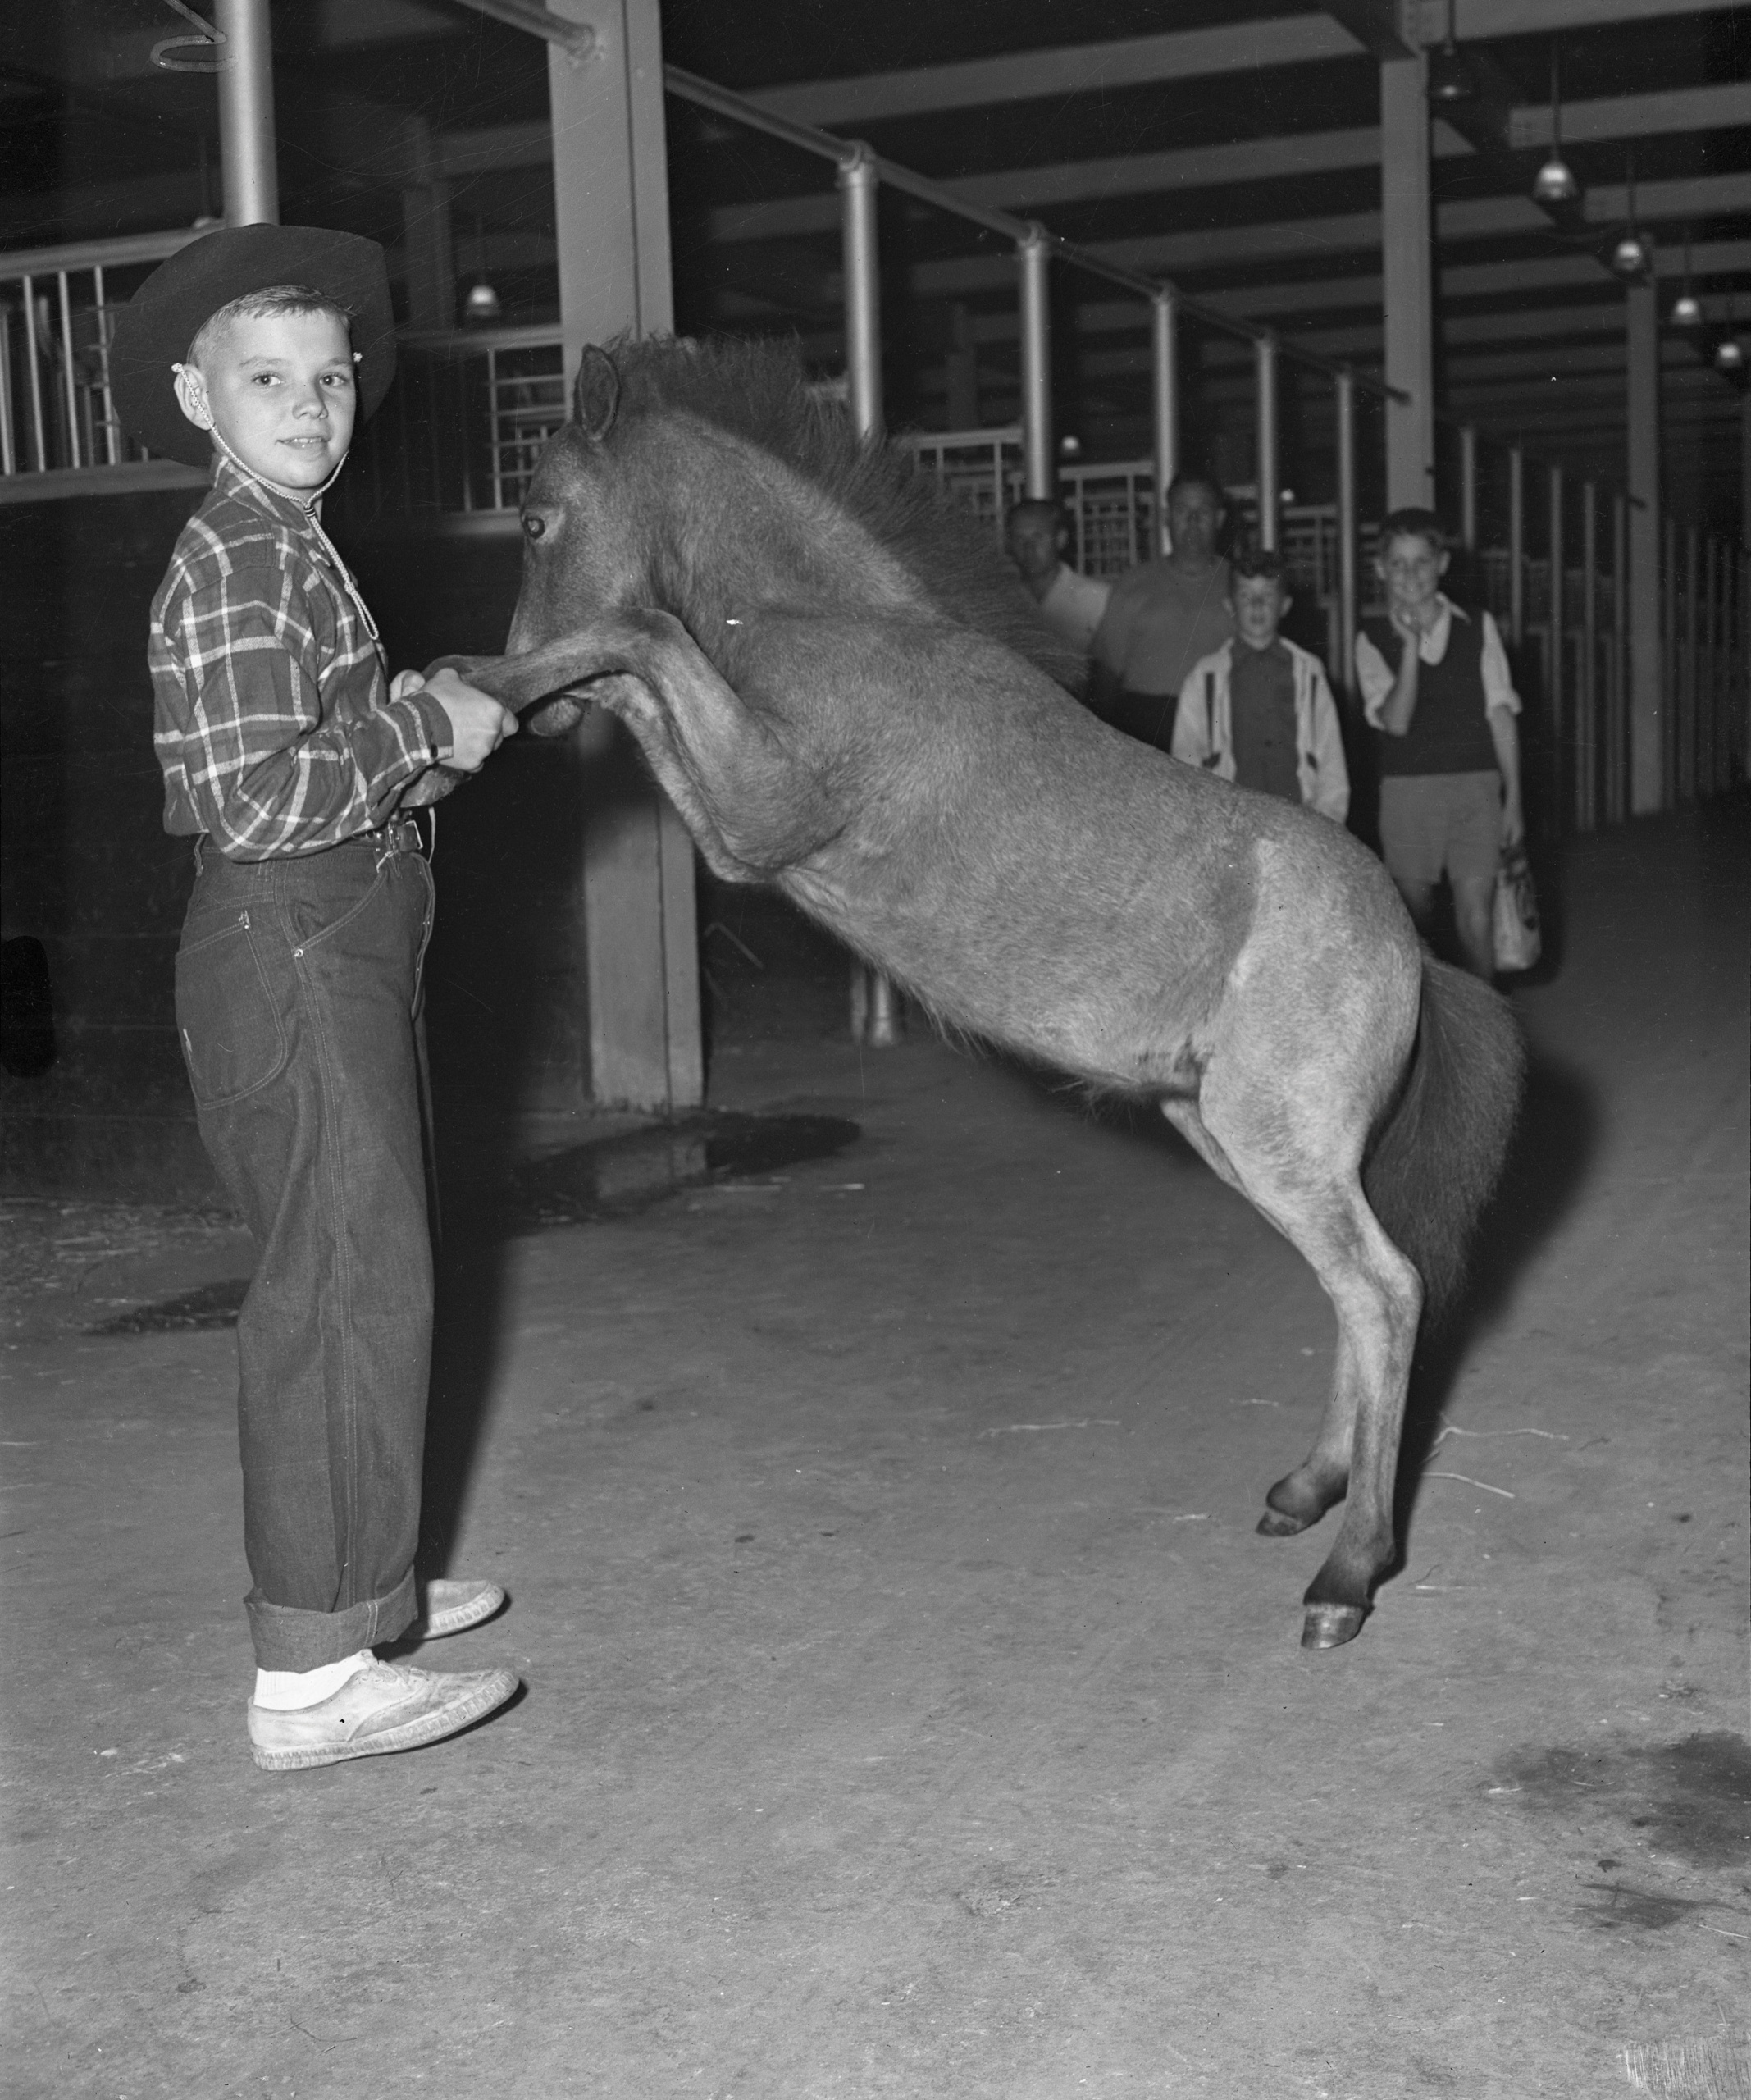 Agriculture-Horses, [190-] – [197-]. Canadian National Exhibition Archives, C1-S2-F6-I11. Courtesy of the CNEA